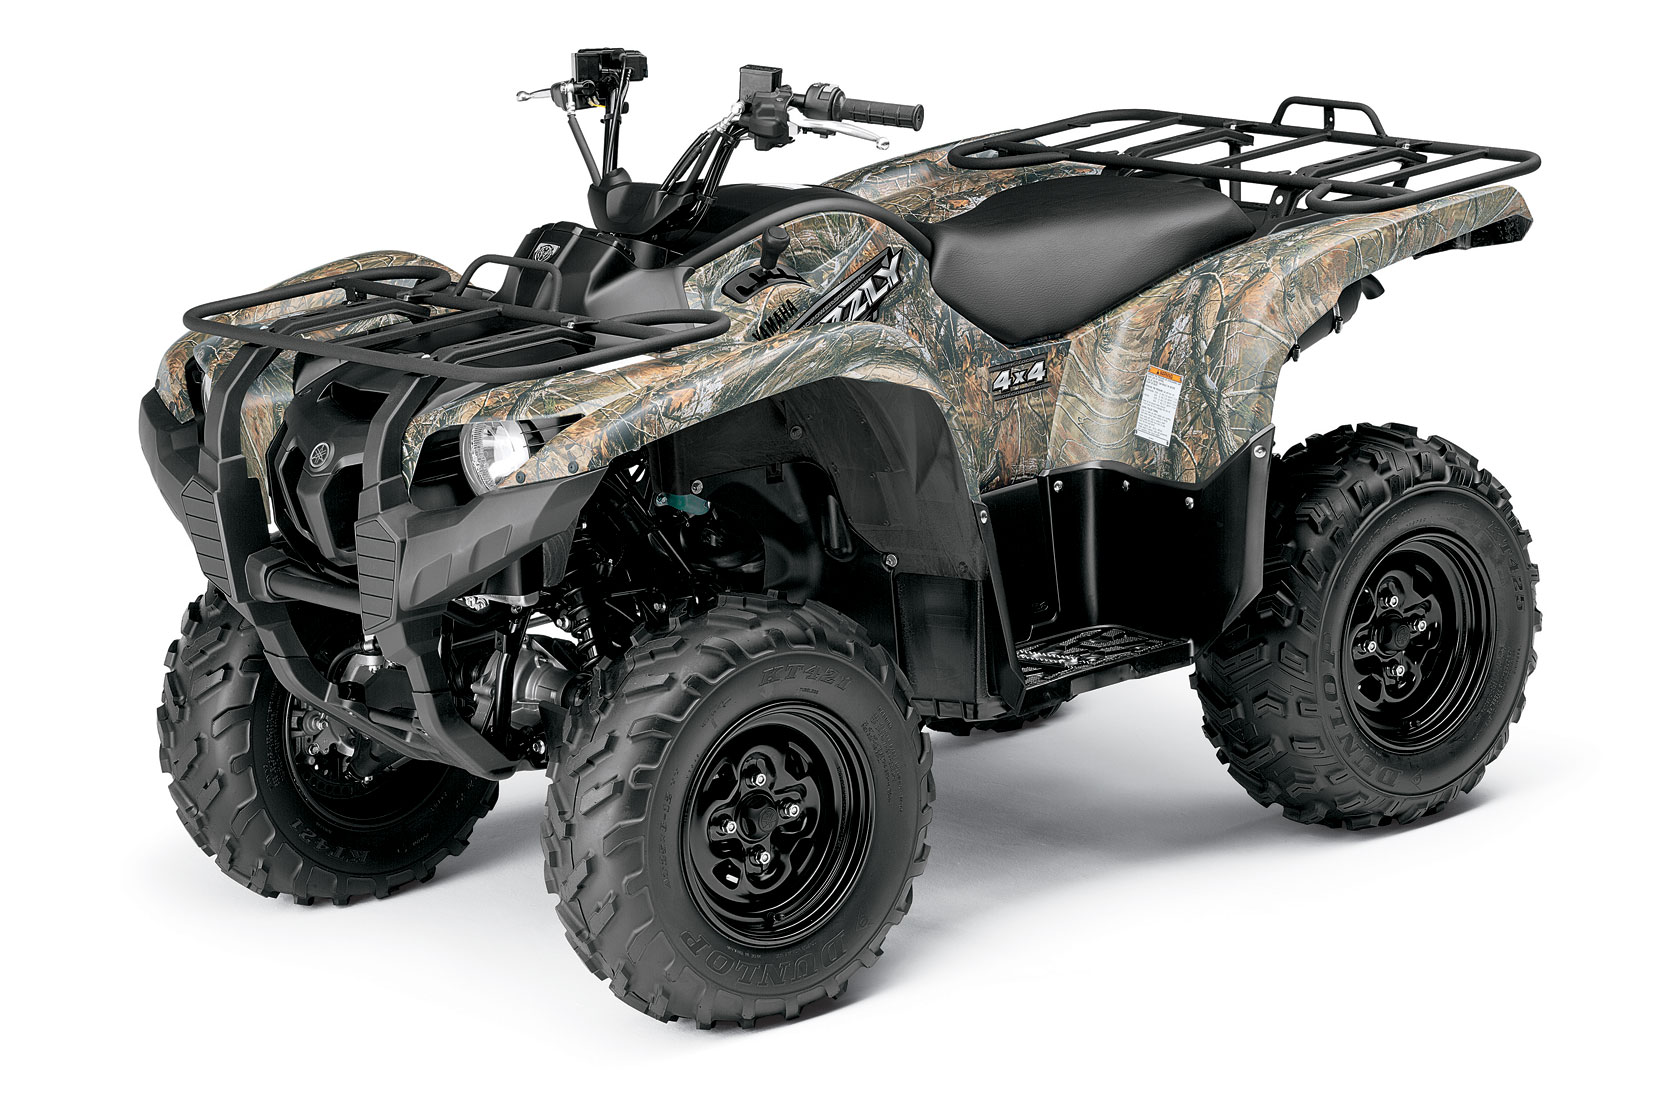 yamaha grizzly 700. 2009 yamaha grizzly 700 fi eps ducks unlimited o